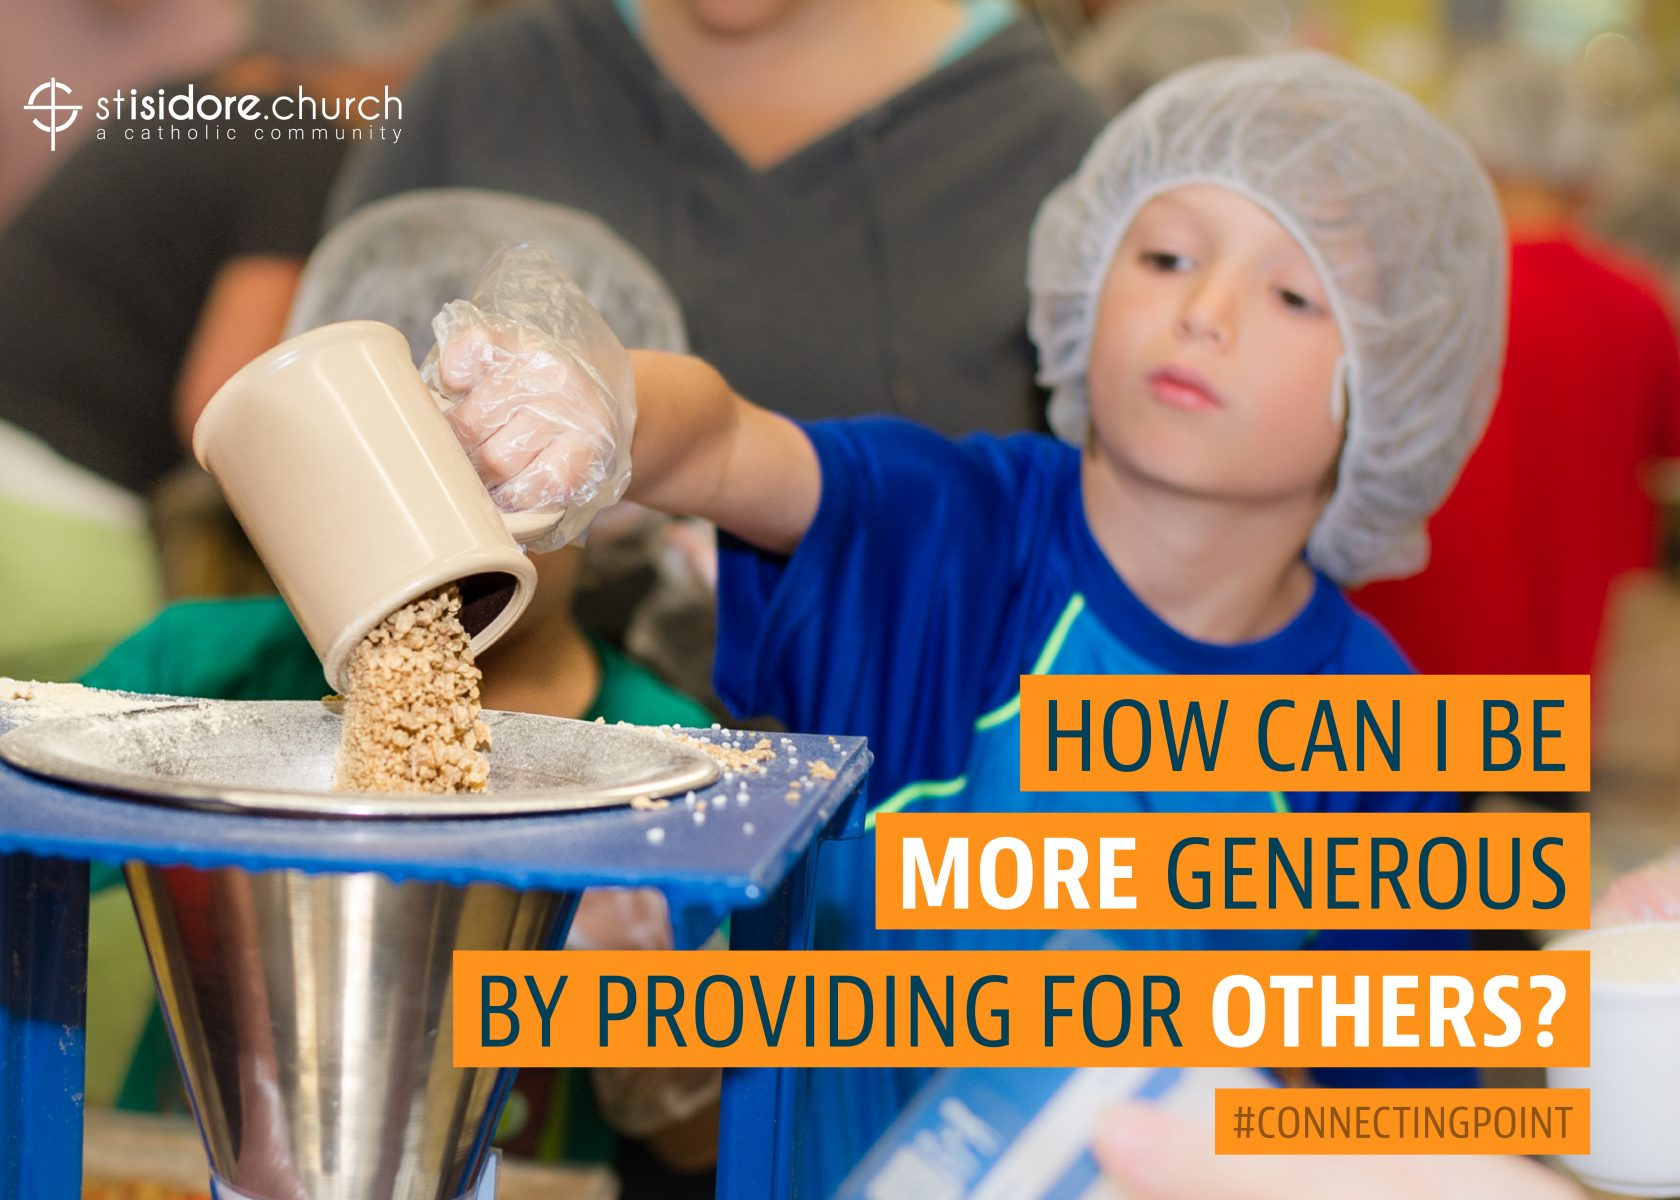 How can I be more generous by providing for others?